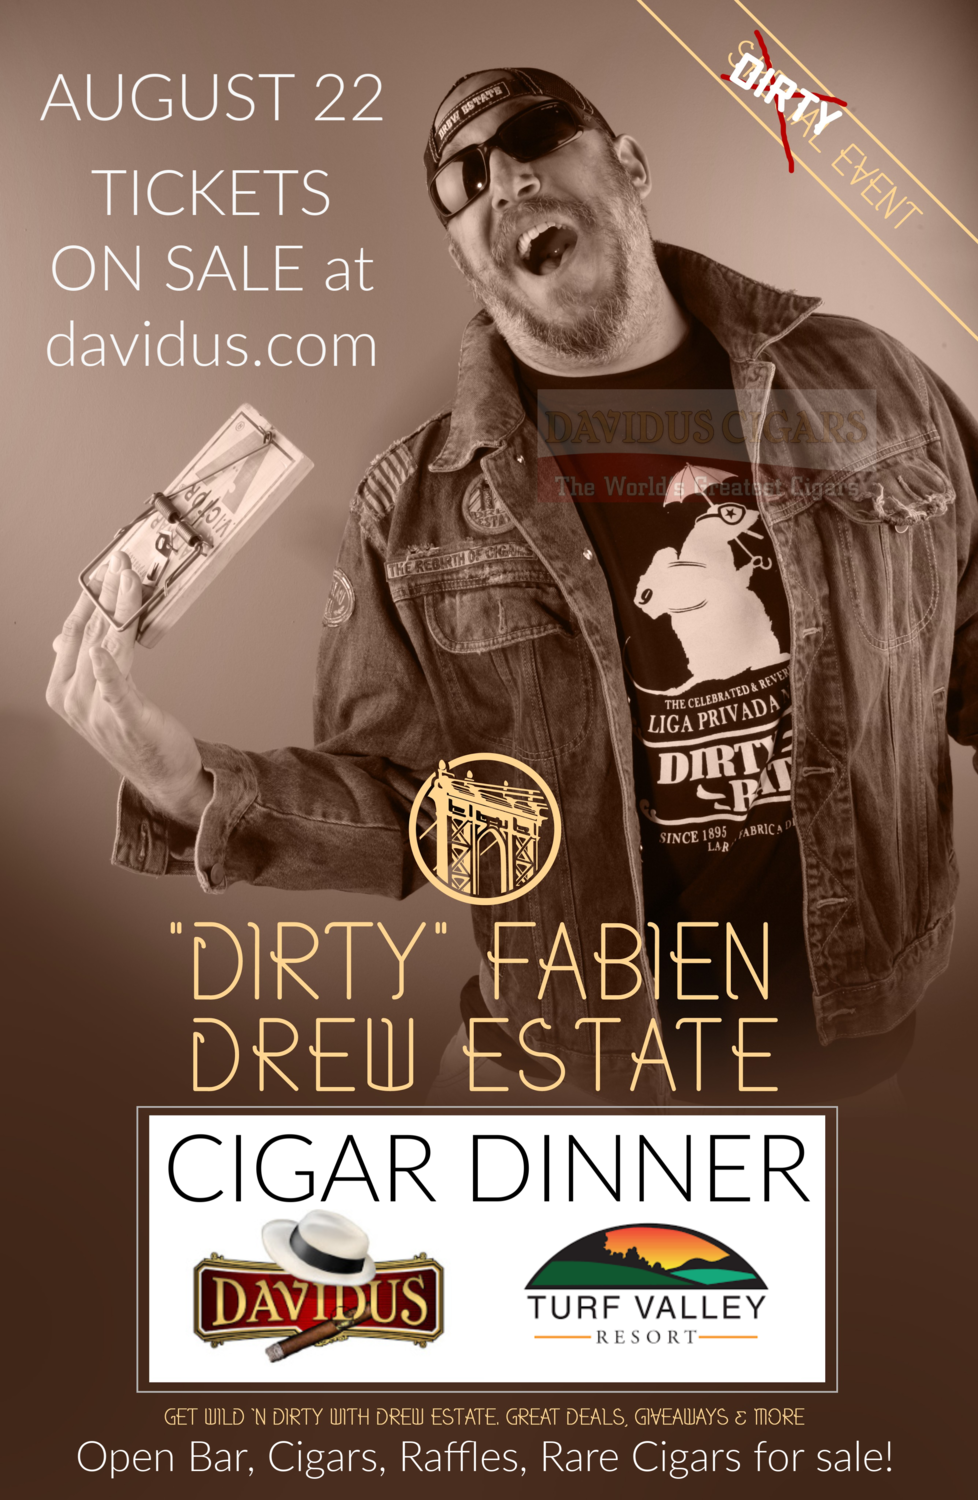 Cigar Dinner with Dirty Fabien - Make one ticket per purchase unless your ticket holders want the same selected dinner selection.